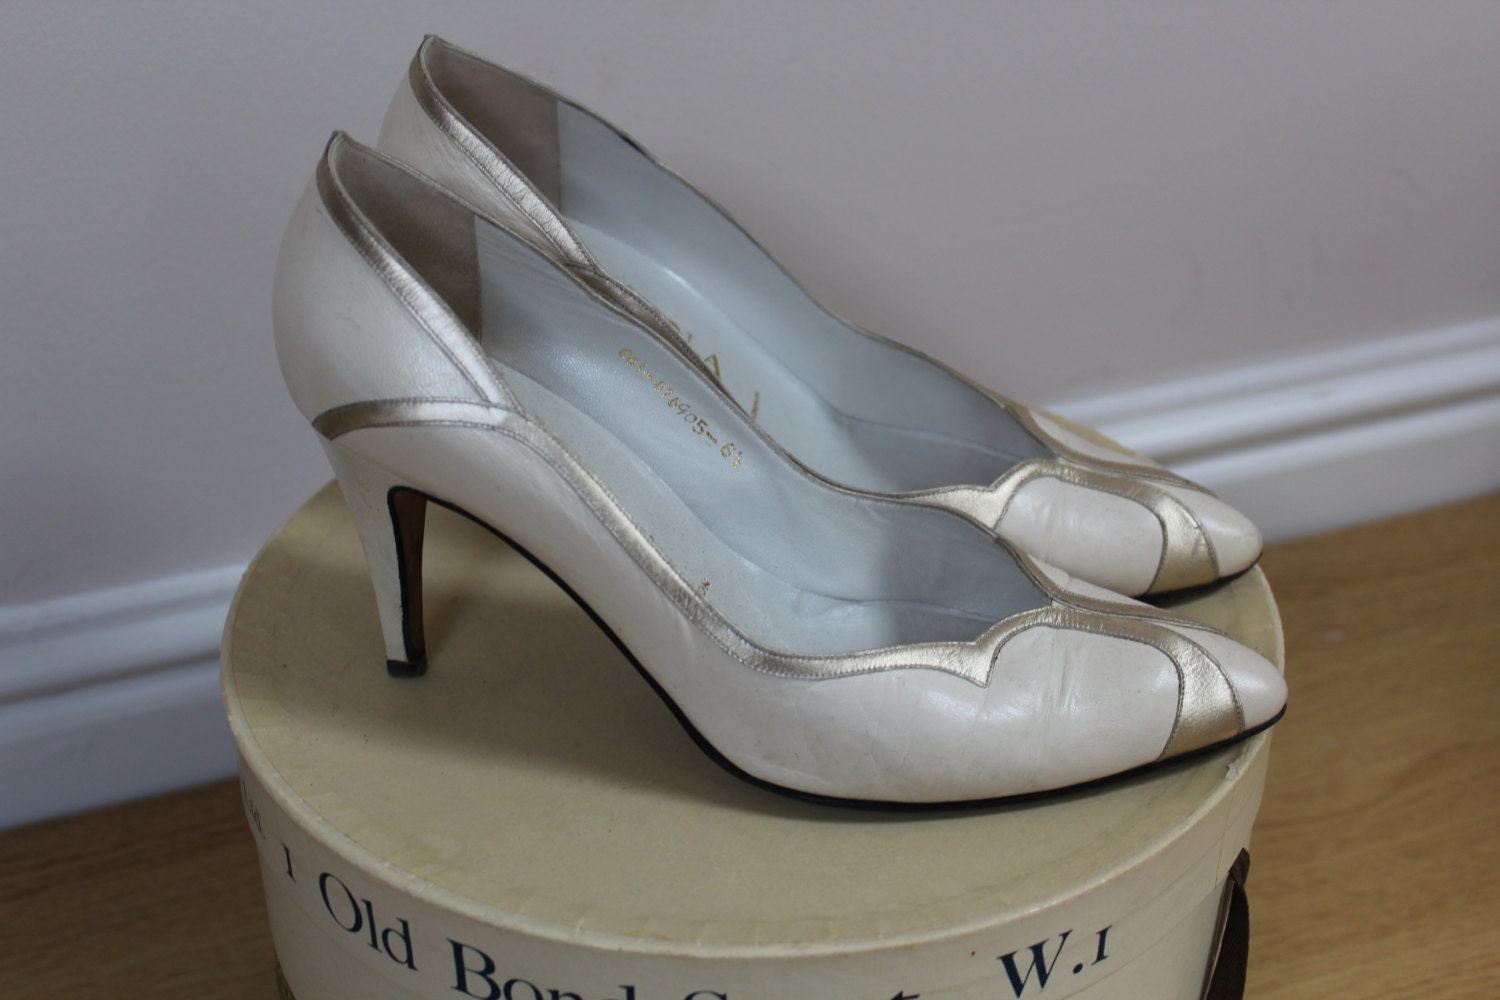 Vintage bridal shoes heels bride shoes heels ivory 80s 1980s metallic shoes heels leather shoes heels kitten heel shoes size 6 shoes heels